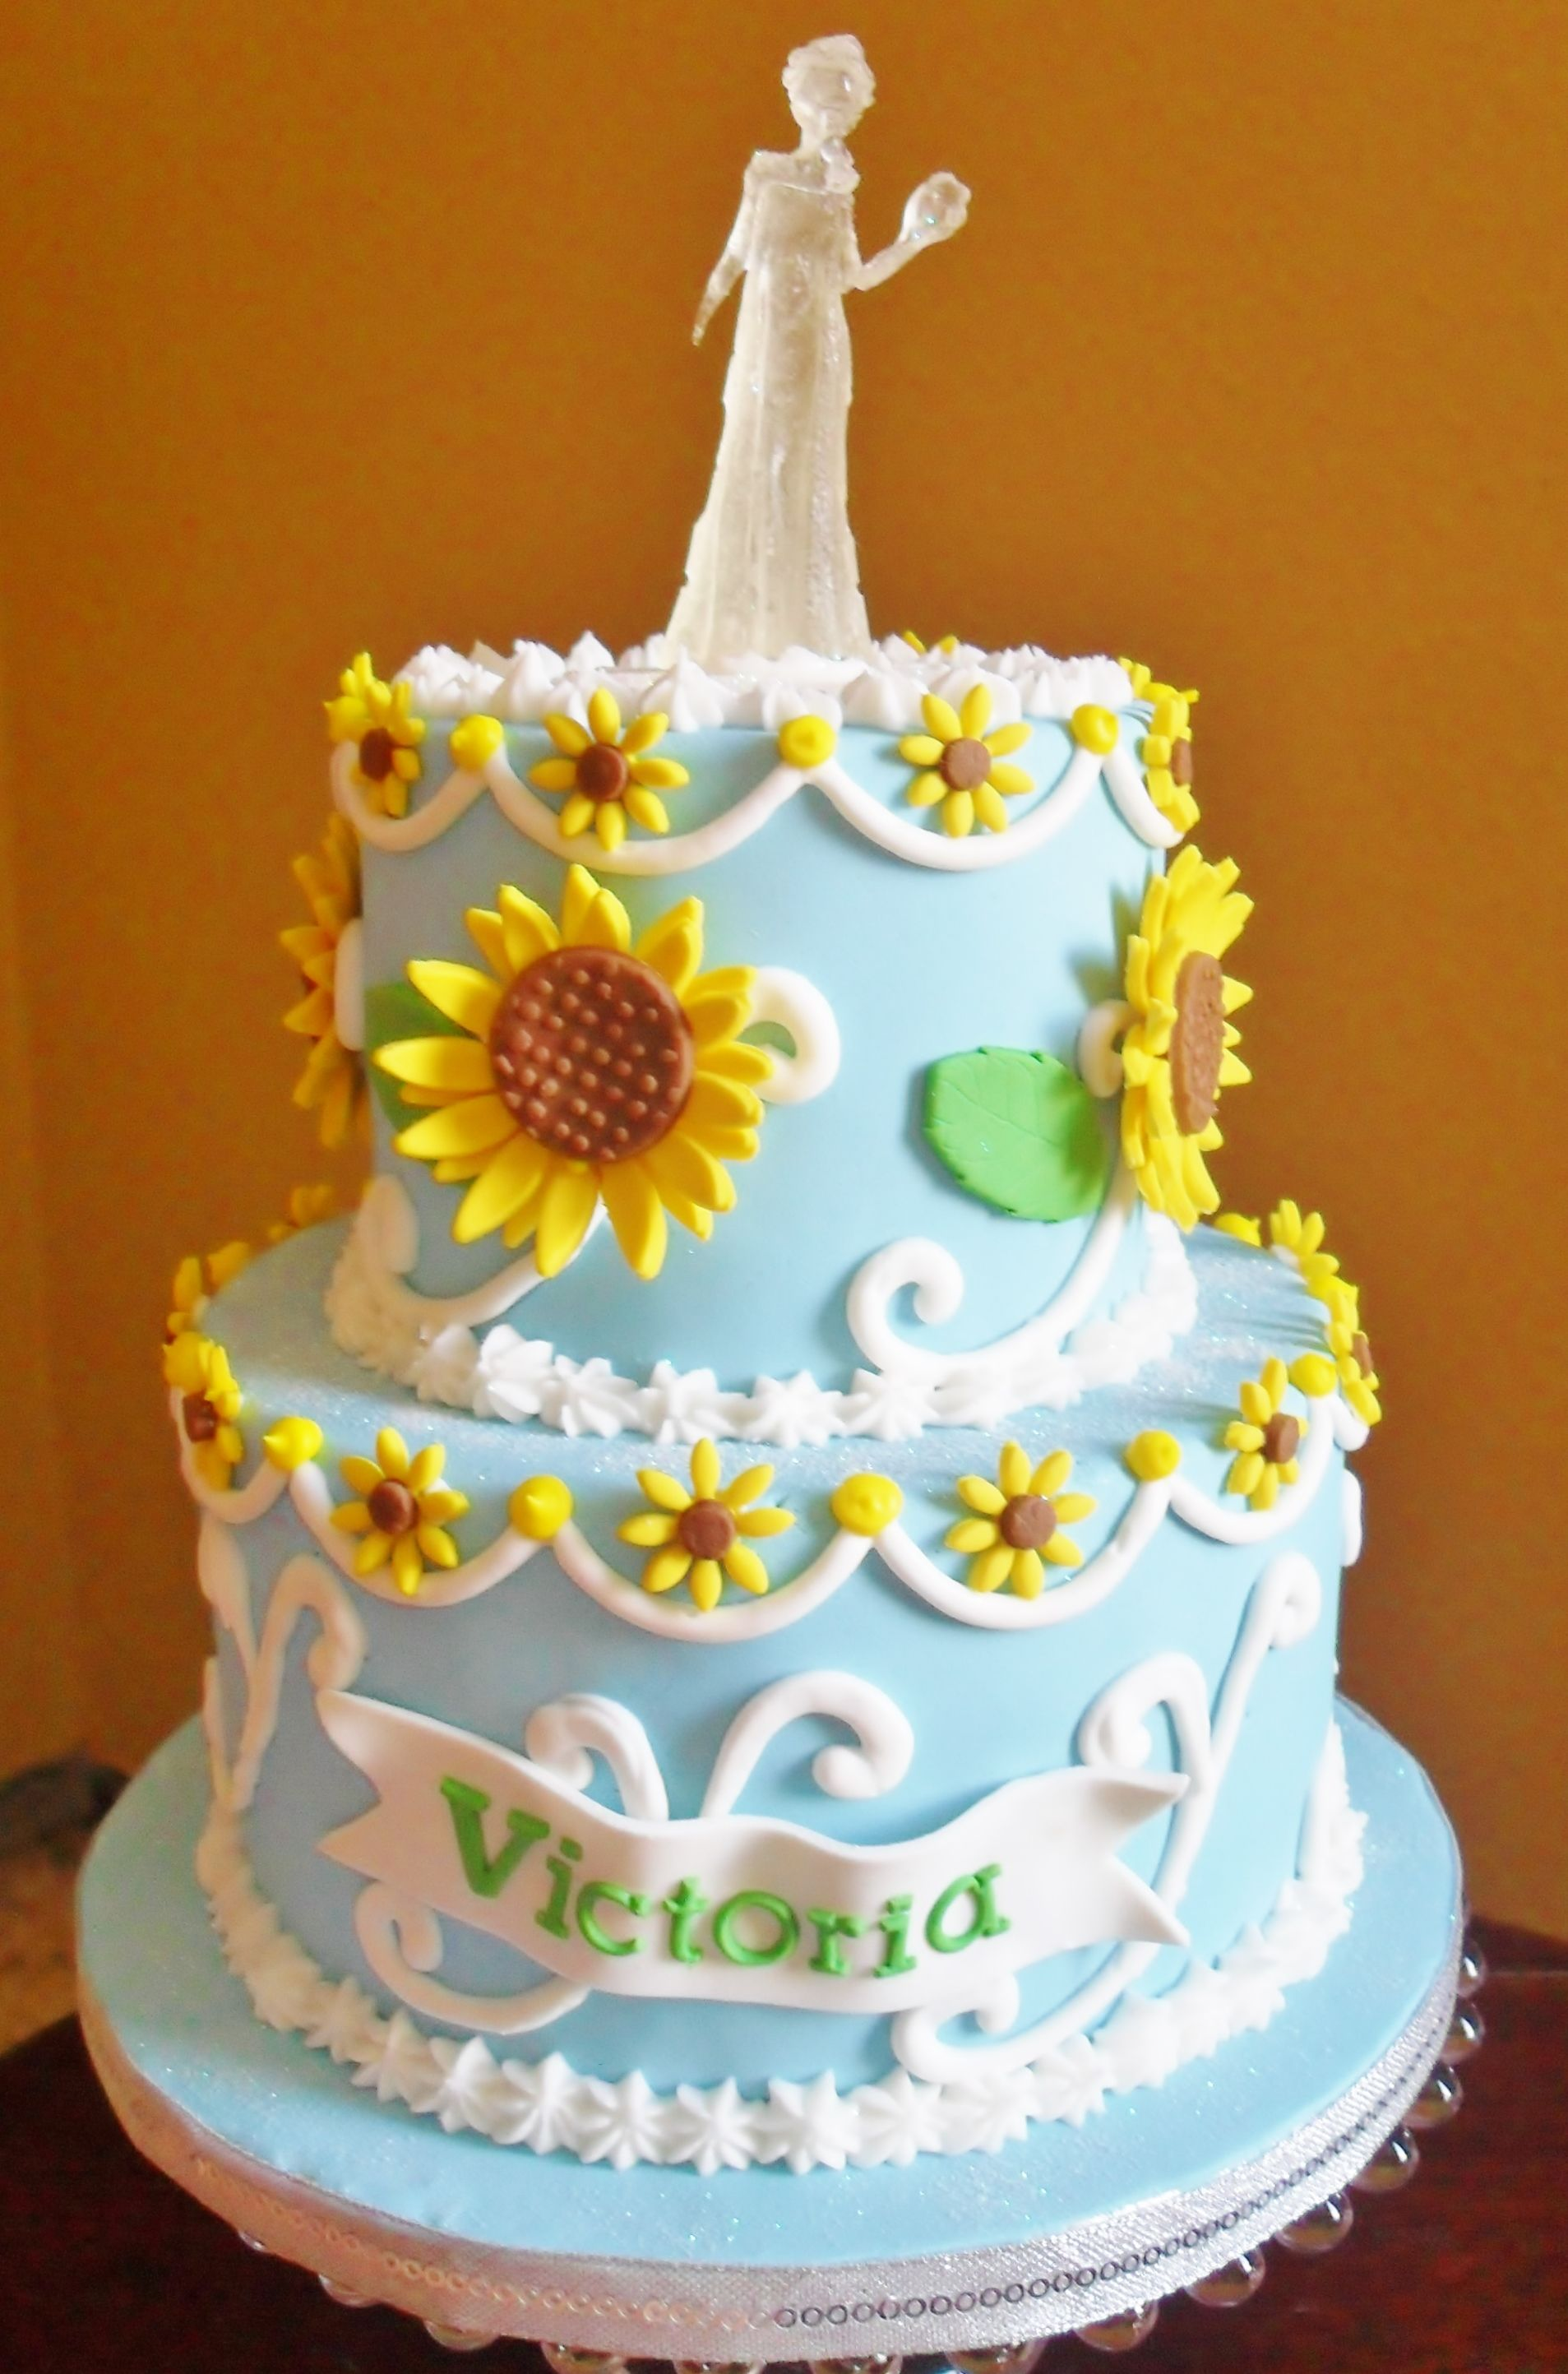 CupcakesHouse Frozen Fever Cake Cakes Pinterest Frozen fever